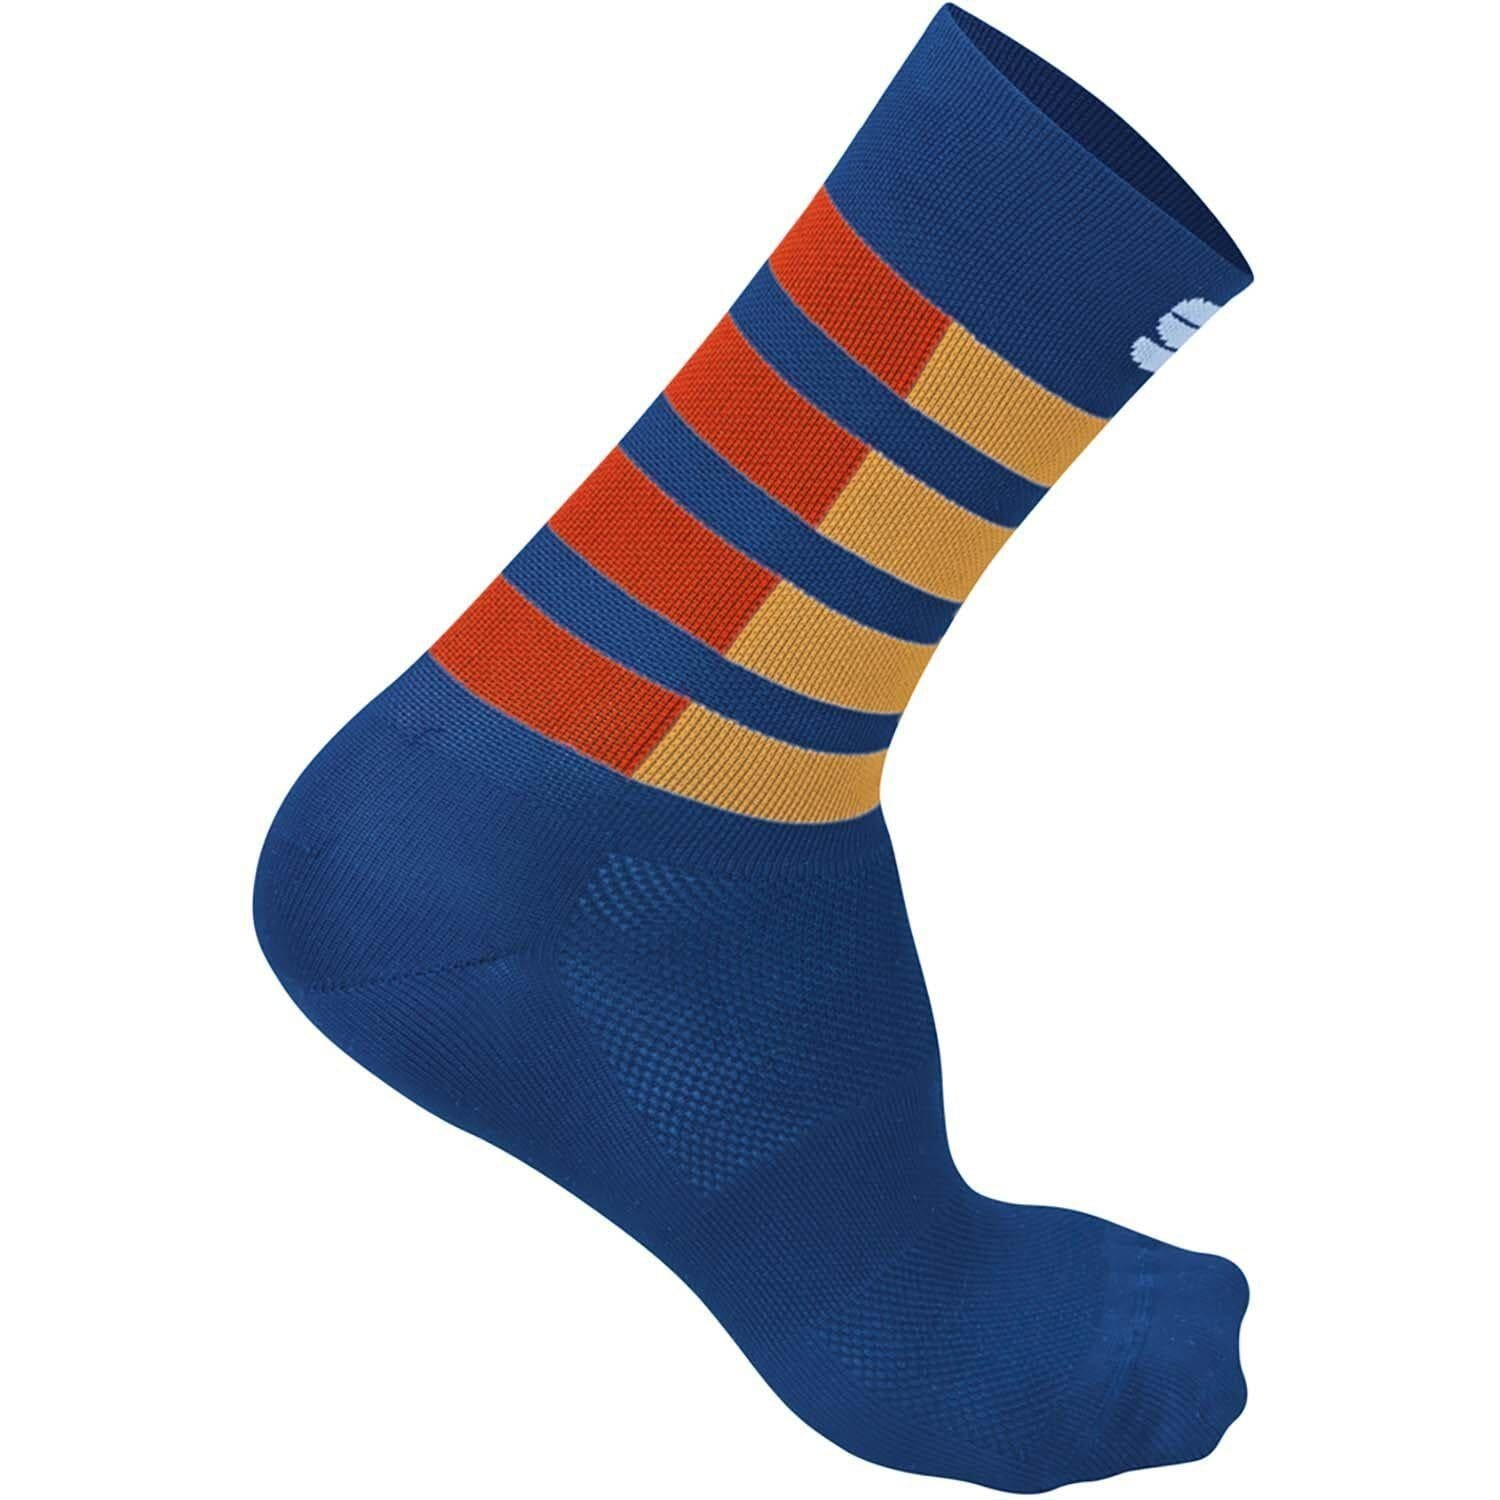 Sportful-Sportful Mate Socks-Blue Twilight/Fire Red/Gold-S-SF2009300612-saddleback-elite-performance-cycling